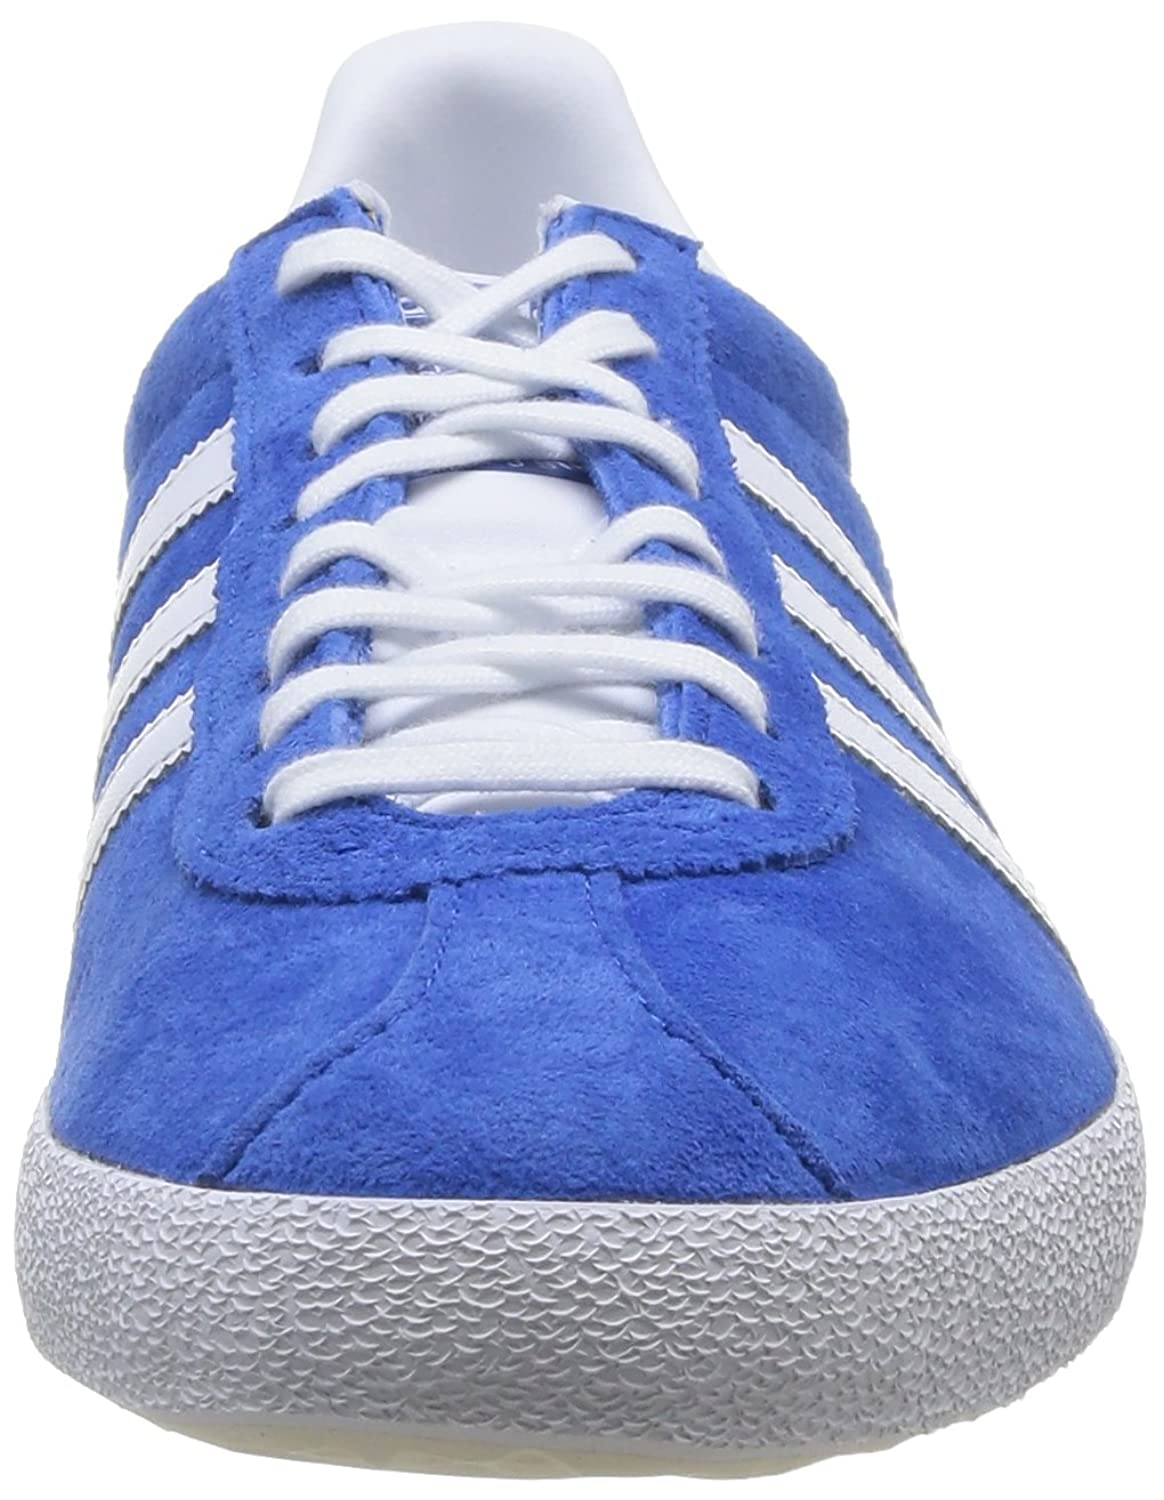 adidas Originals Men\u0027s Gazelle Og Leather Sneakers: Buy Online at Low  Prices in India - Amazon.in